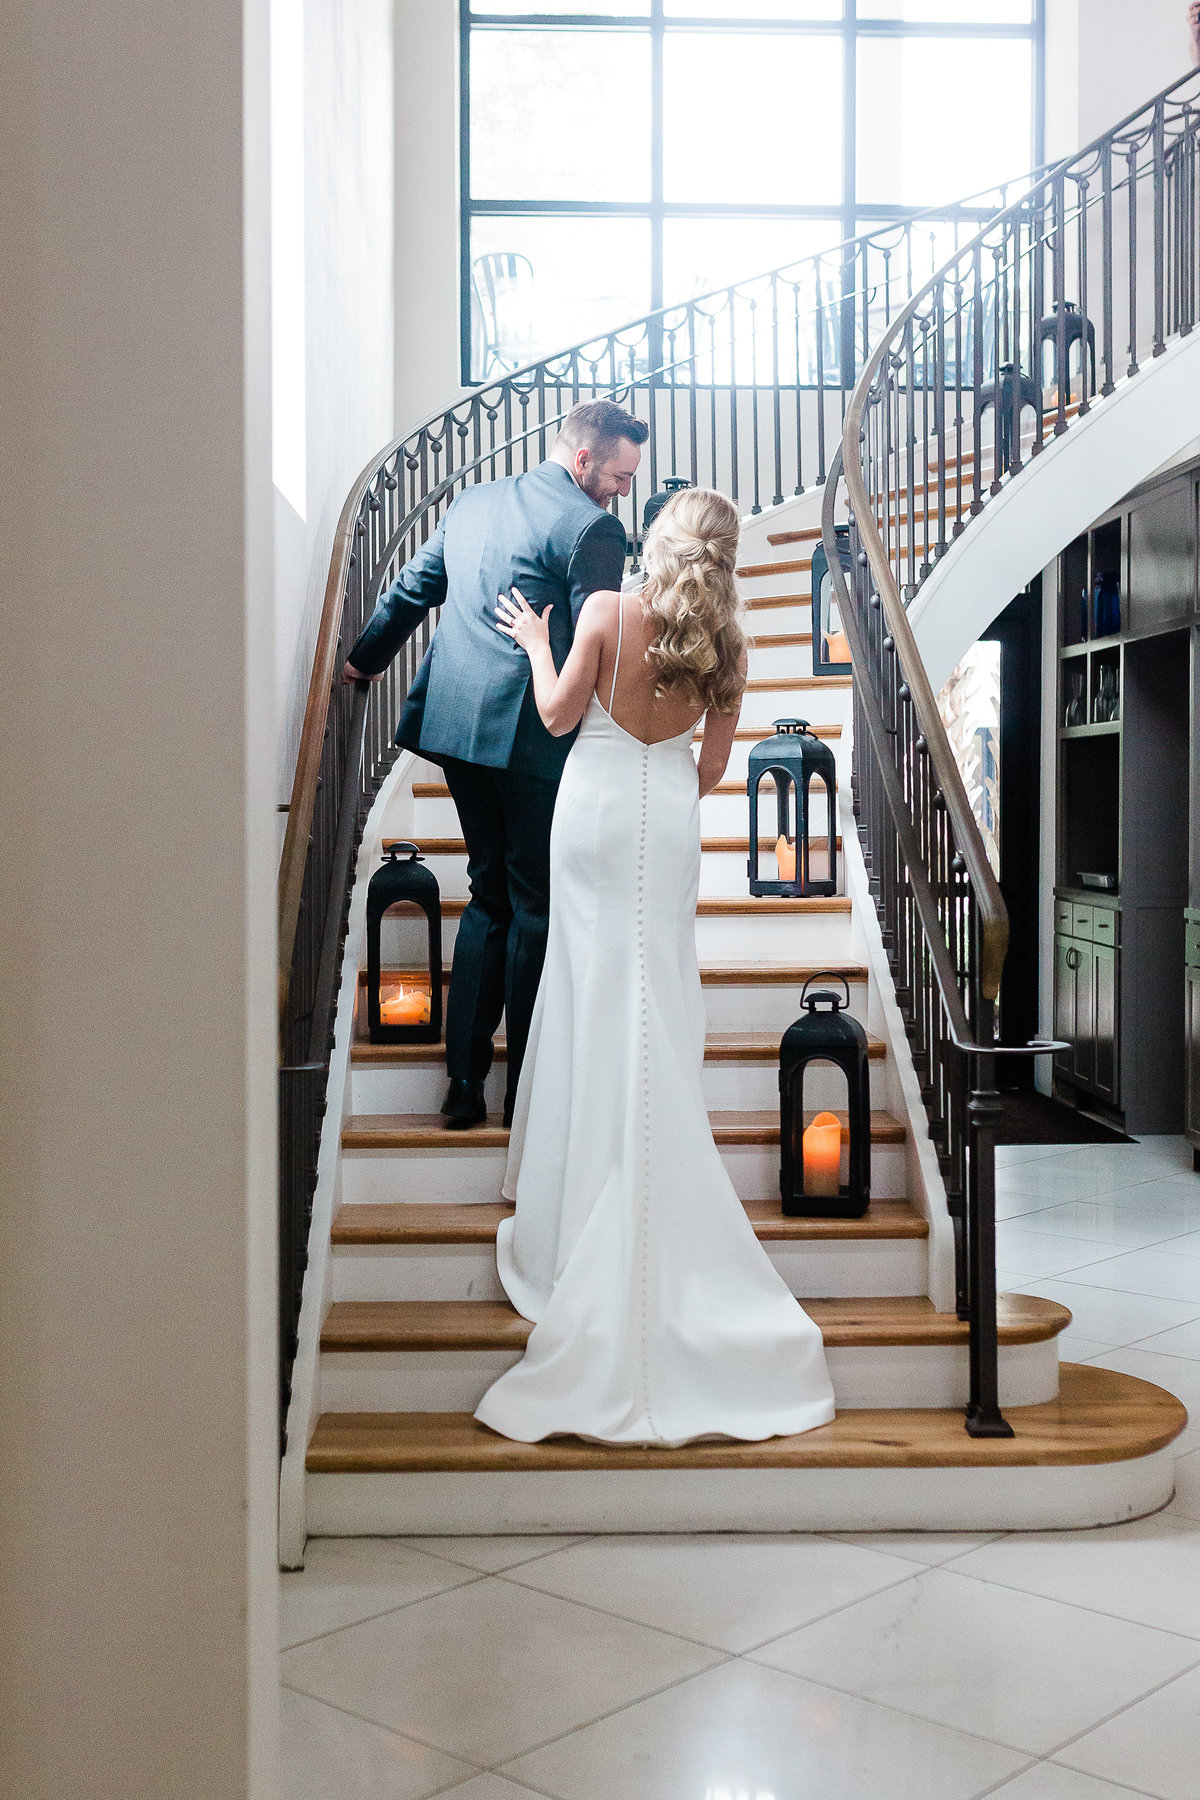 Charleston Weddings- Nancy Lempesis Photography - Wedding Phtography (75)